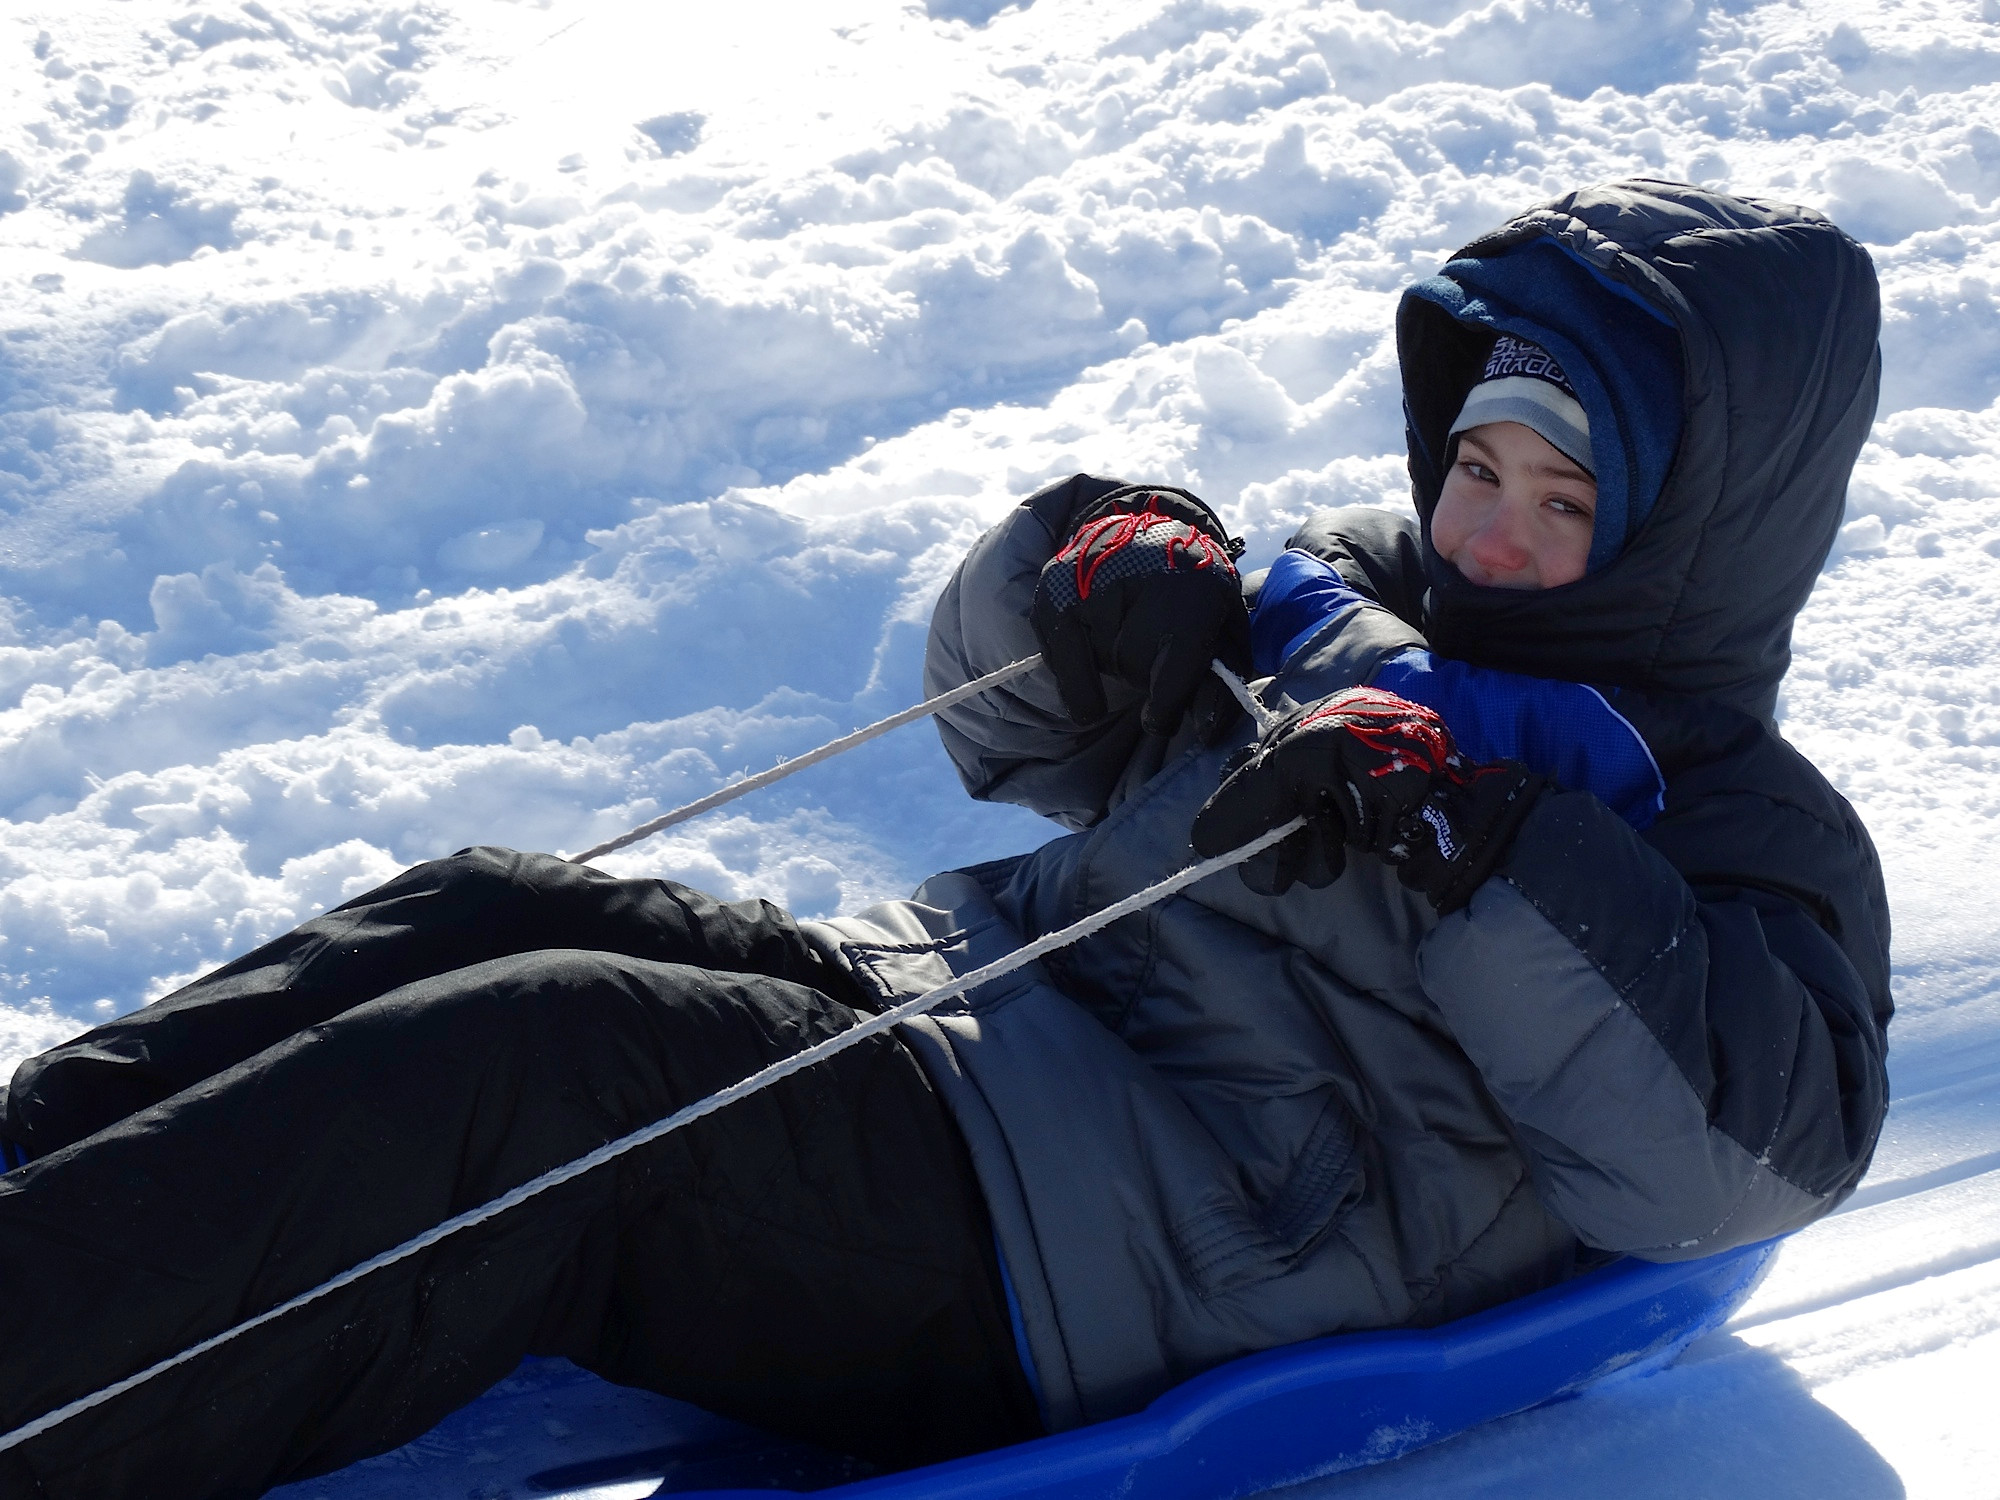 Michael Houlihan, 9, of Valley Stream, spent part of the day sledding at the Westwood train station.